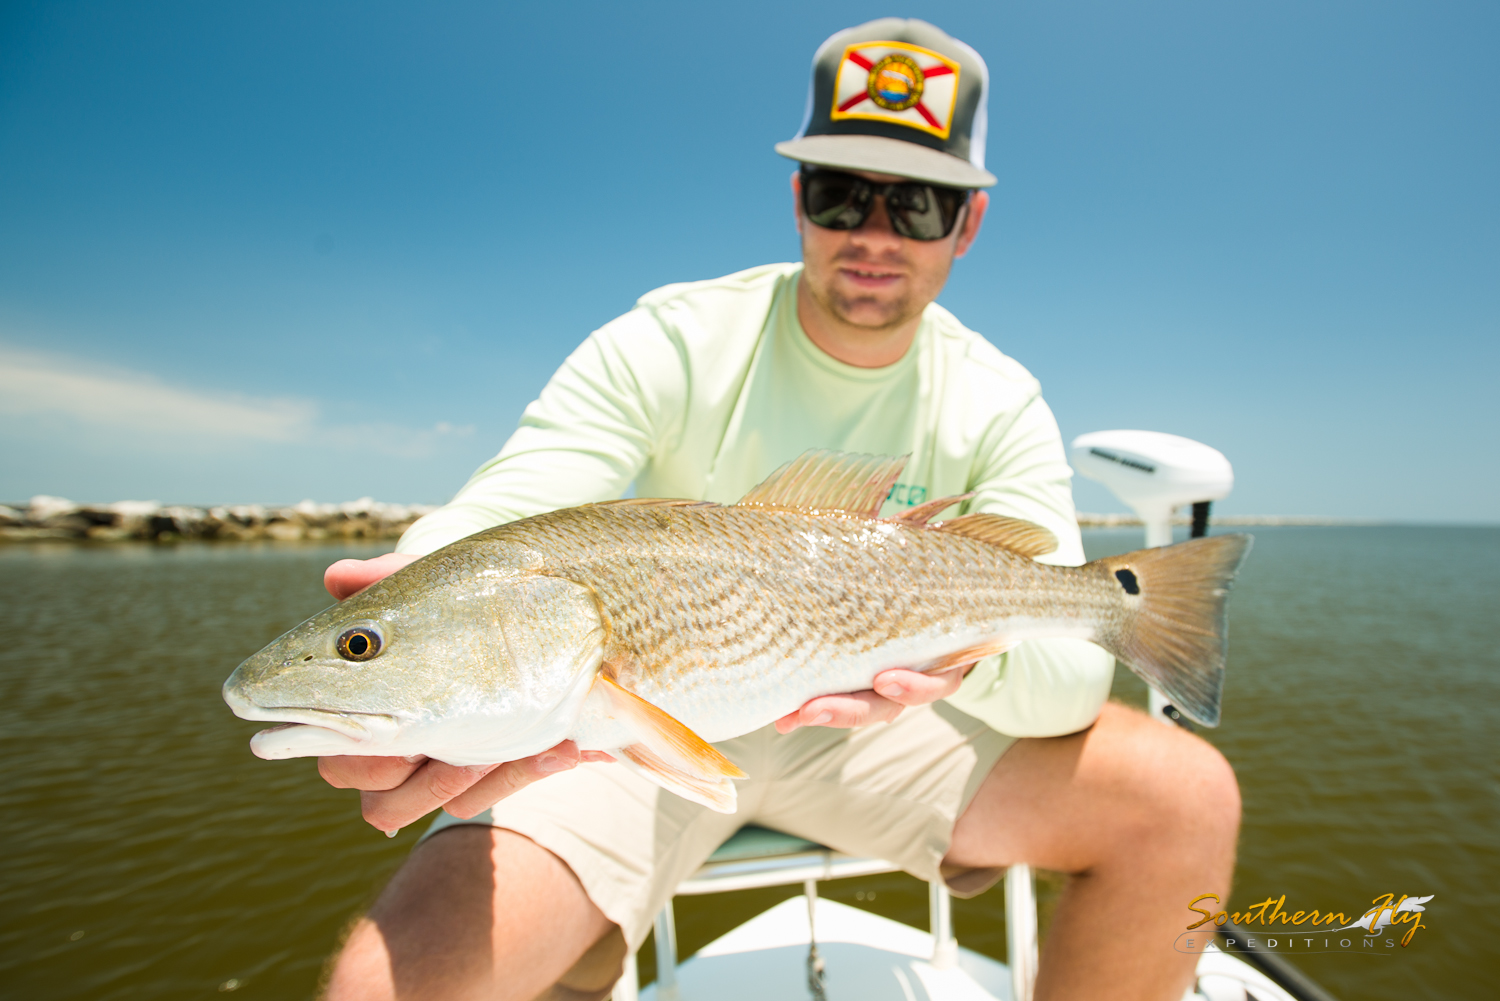 Fly Fishing guide New Orleans Louisiana Southern Fly Expeditions